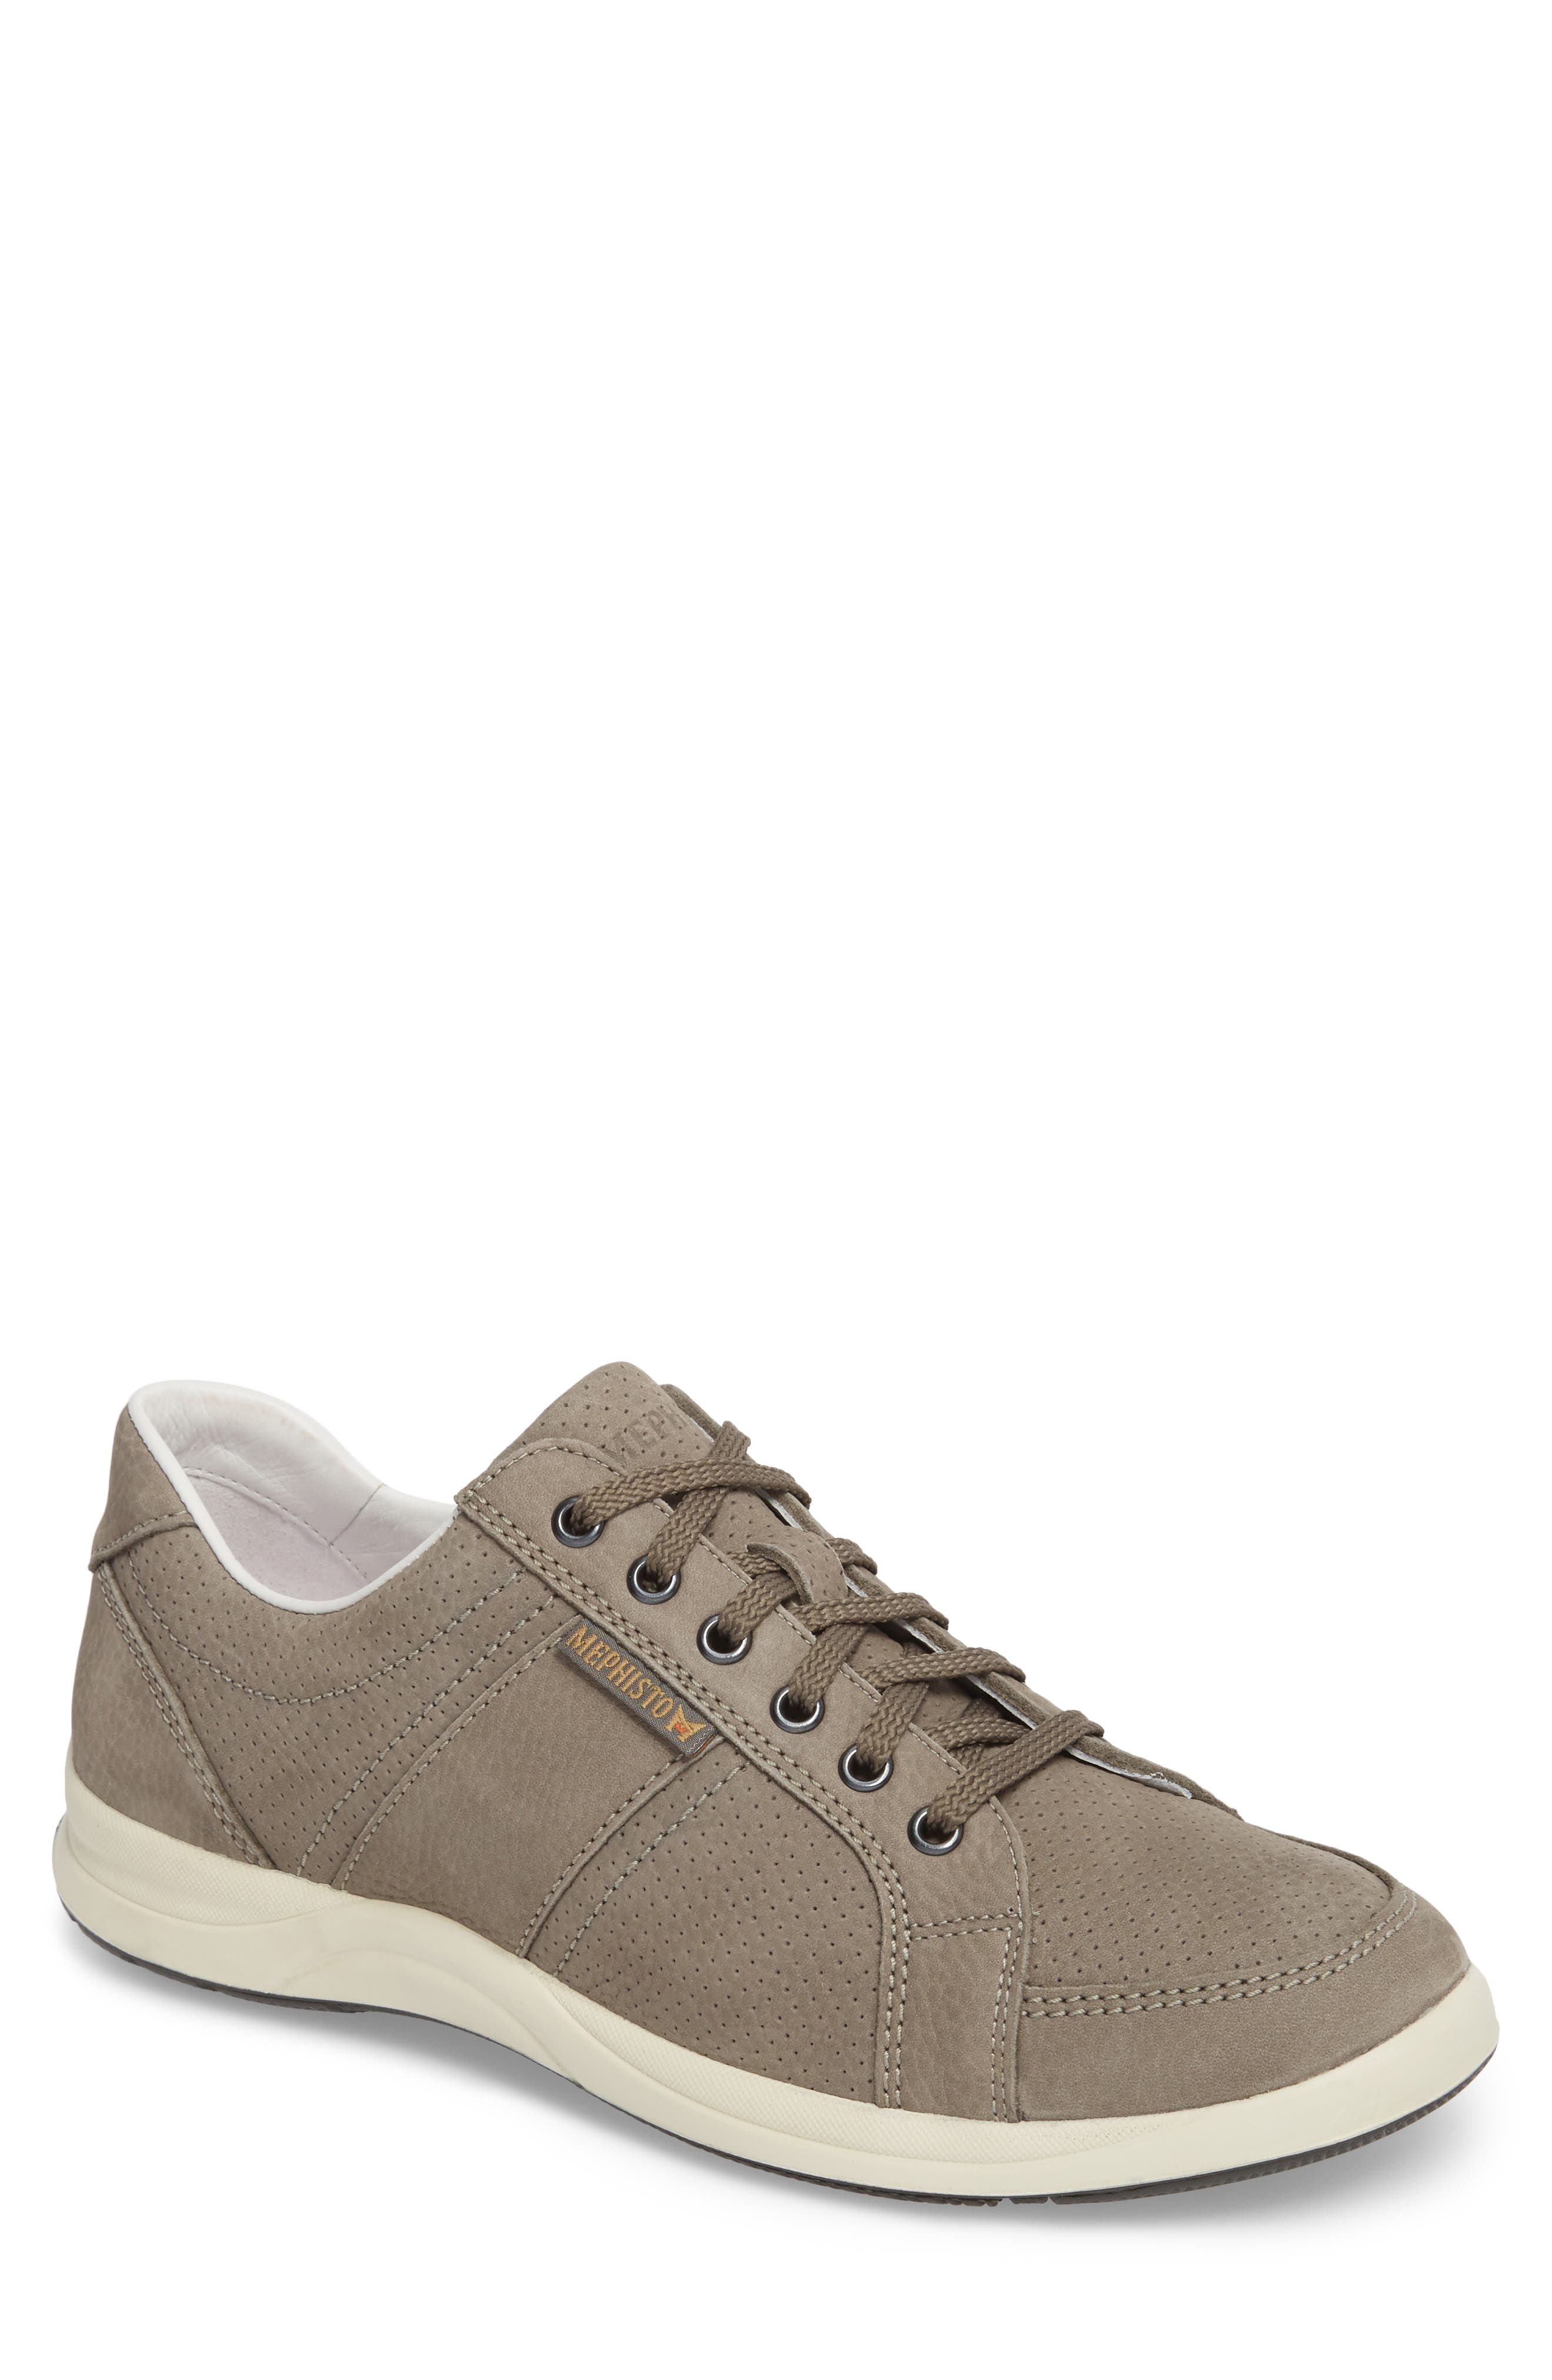 'Hero' Perforated Sneaker,                         Main,                         color, GREY LEATHER